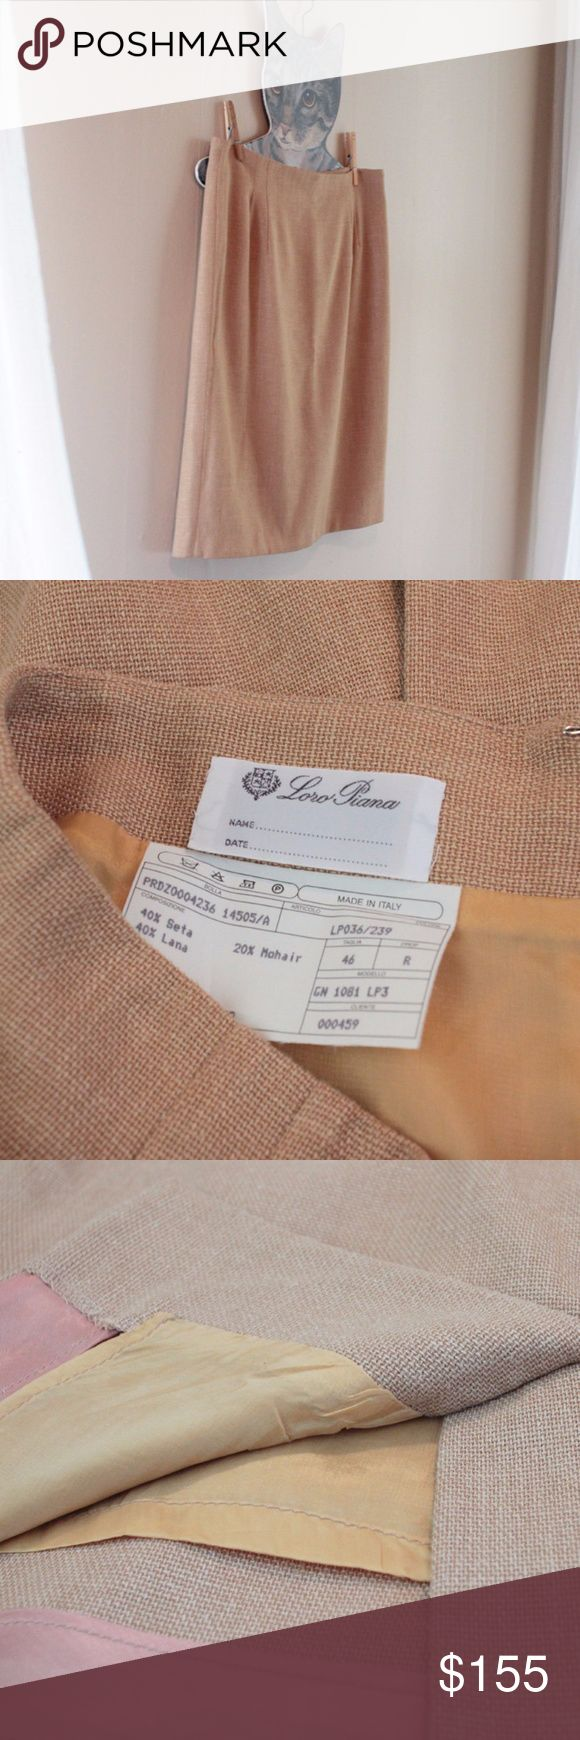 "Vintage Loro Piana Italian Mohair Camel Skirt Beautifully made classic vintage camel skirt by Loro Piana. Fully lined and perfectly tailored.   Loro Piana is an Italian clothing company specializing in high-end, luxury cashmere and wool products. This lovely skirt would have been hundreds of dollars new!  Label // Loro Piana Size // Fits like a US size 4 Material // 40% seta, 40% lana, 20% mohair Length // 21.5"" Waist // 29"" Hip // 38"" Loro Piana Skirts Mini"